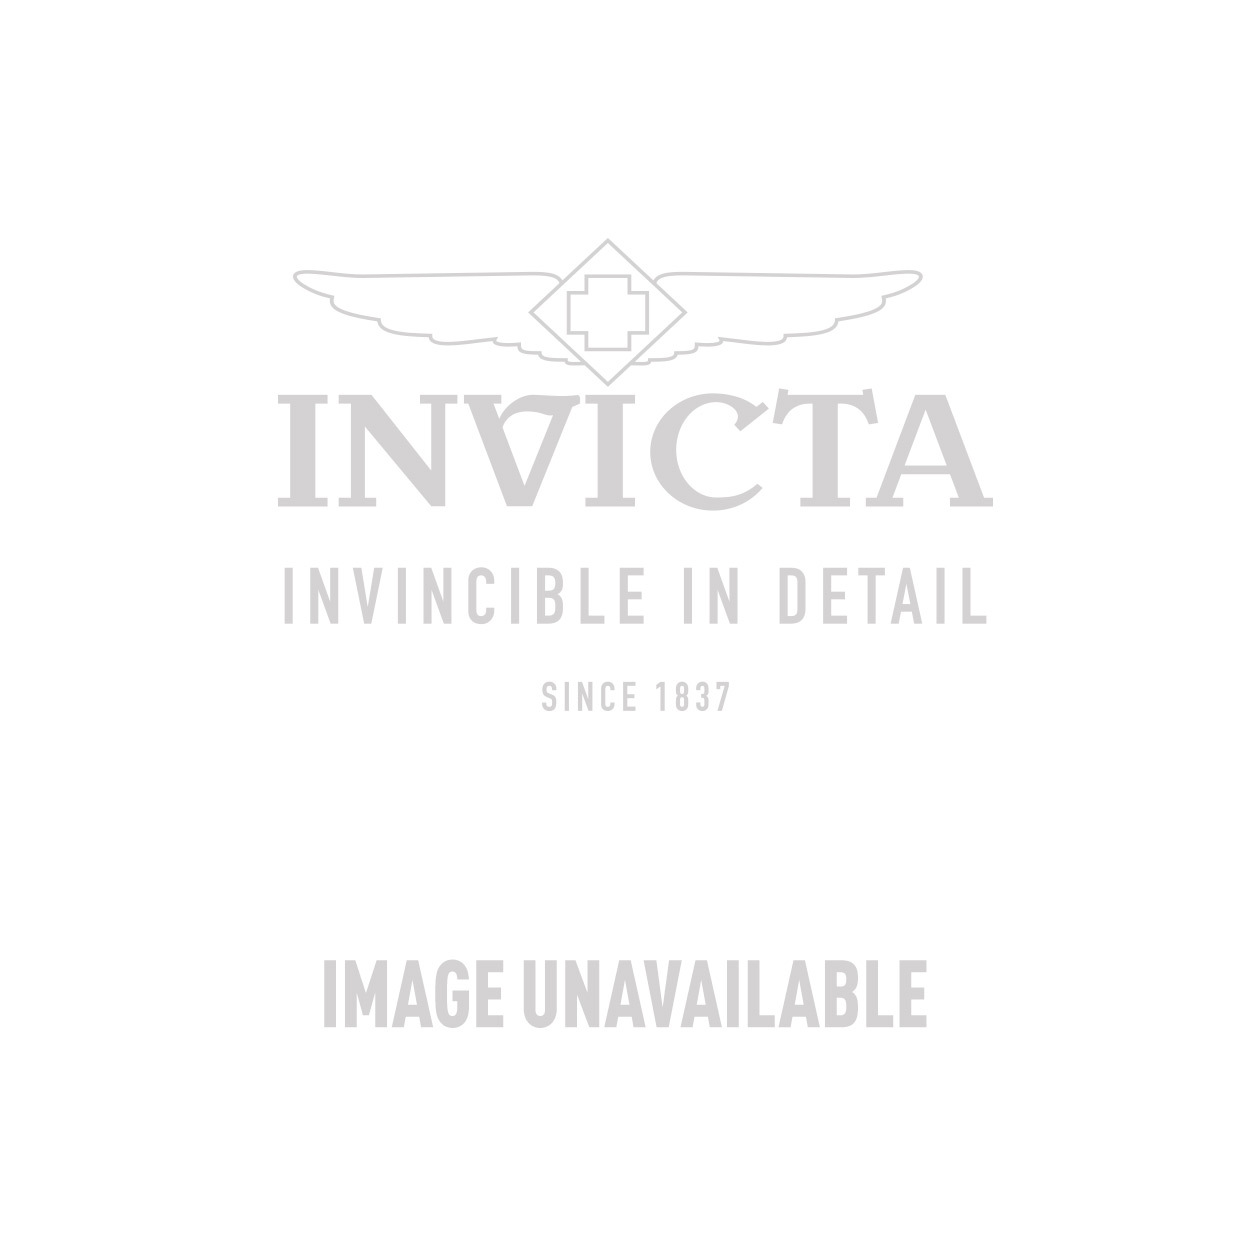 Need to replace a band or bracelet? You can easily arrange for replacement through any of the Invicta Store locations. If a store location is not available to you, you can order a new band directly through the Invicta .